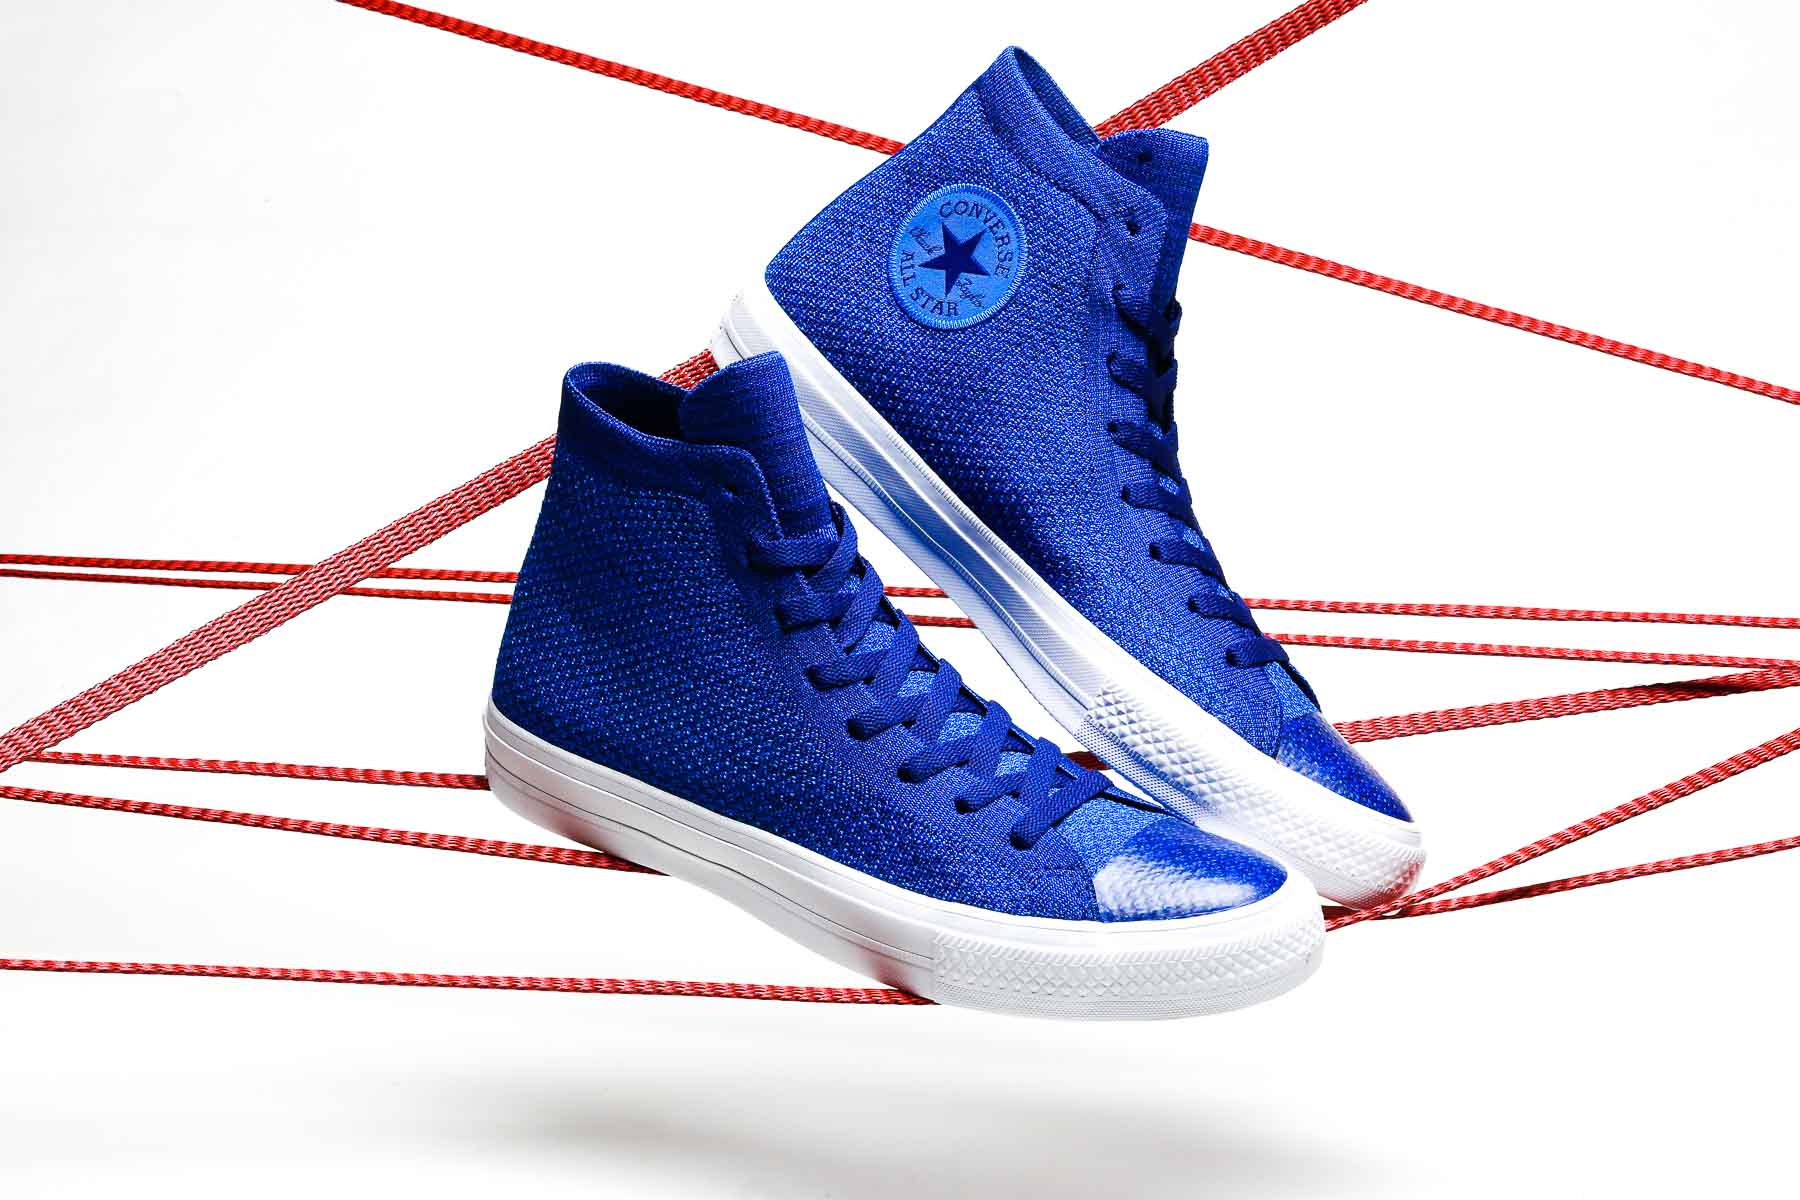 converse-chuck taylor all star x nike flyknit-4